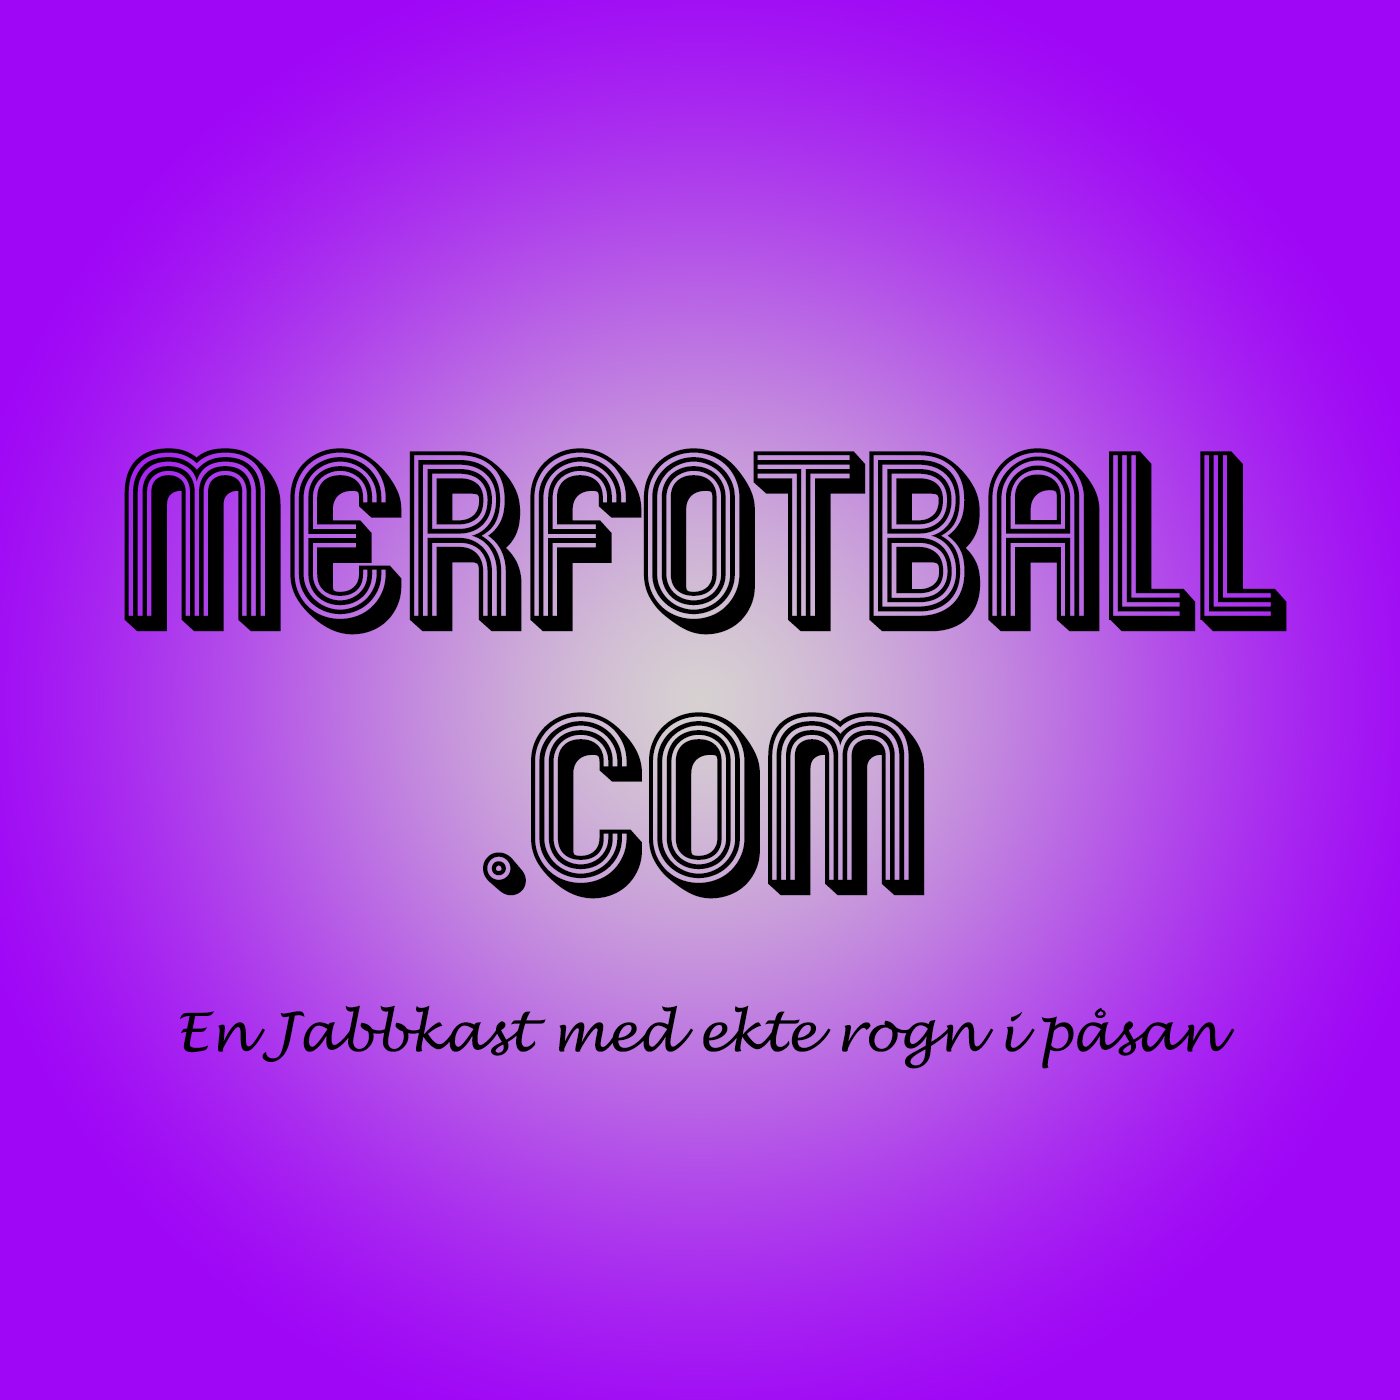 Merfotball.com » Podcast